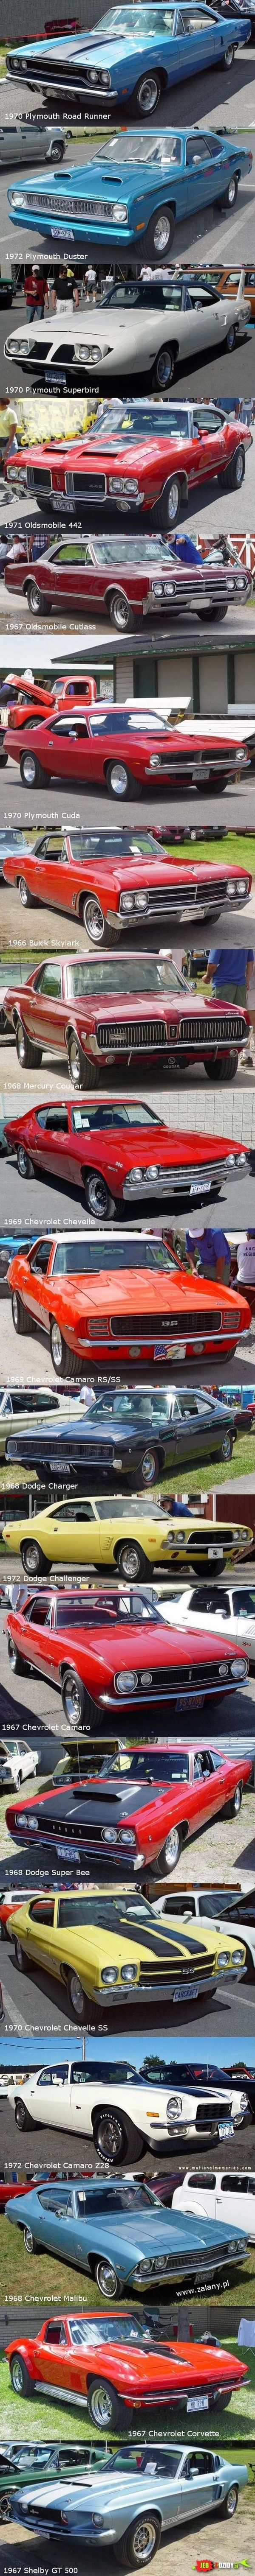 Back in the Day! 1966 Buick Skylark (Convertible) 1967 Oldsmobile Cutlass American Classics 1967 - 1972...Re- pin brought to you by #LowcostcarInsurance at #HouseofInsurance #Eugene,Oregon